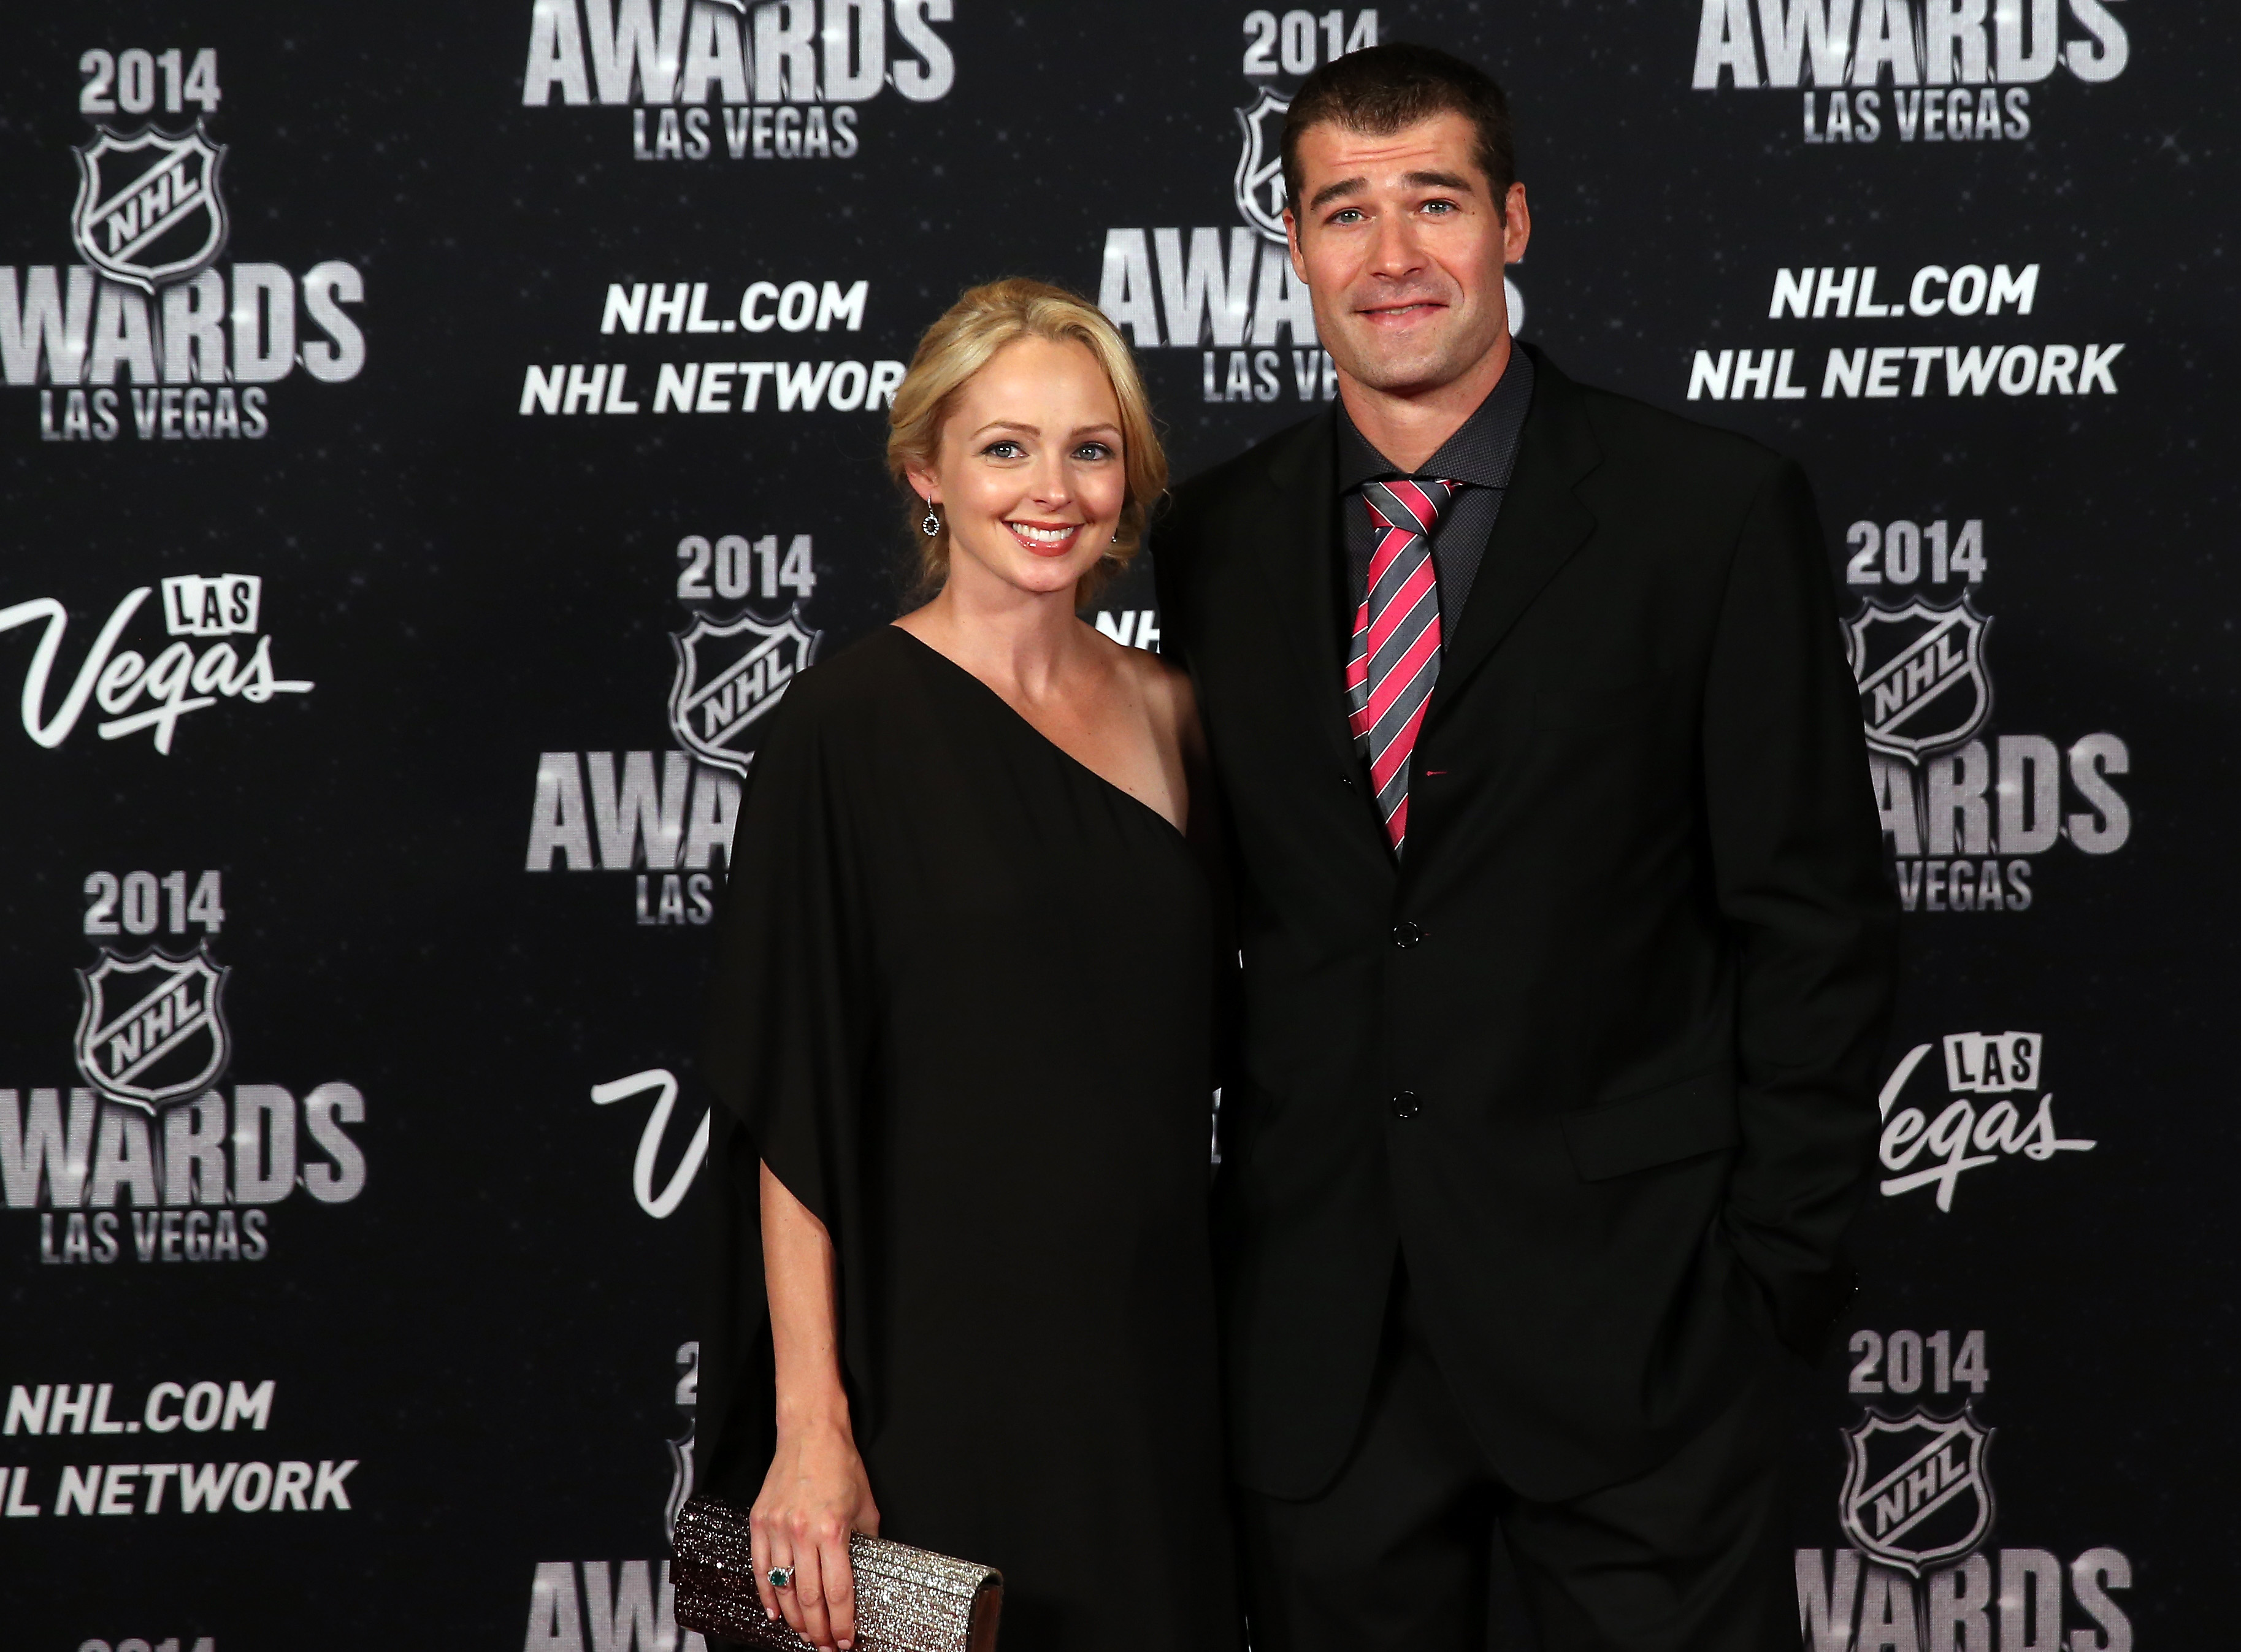 Patrick Marleau of the San Jose Sharks with his wife Christina arrive on the red carpet prior to the 2014 NHL Awards at Encore Las Vegas on June 24, 2014 in Las Vegas, Nevada.